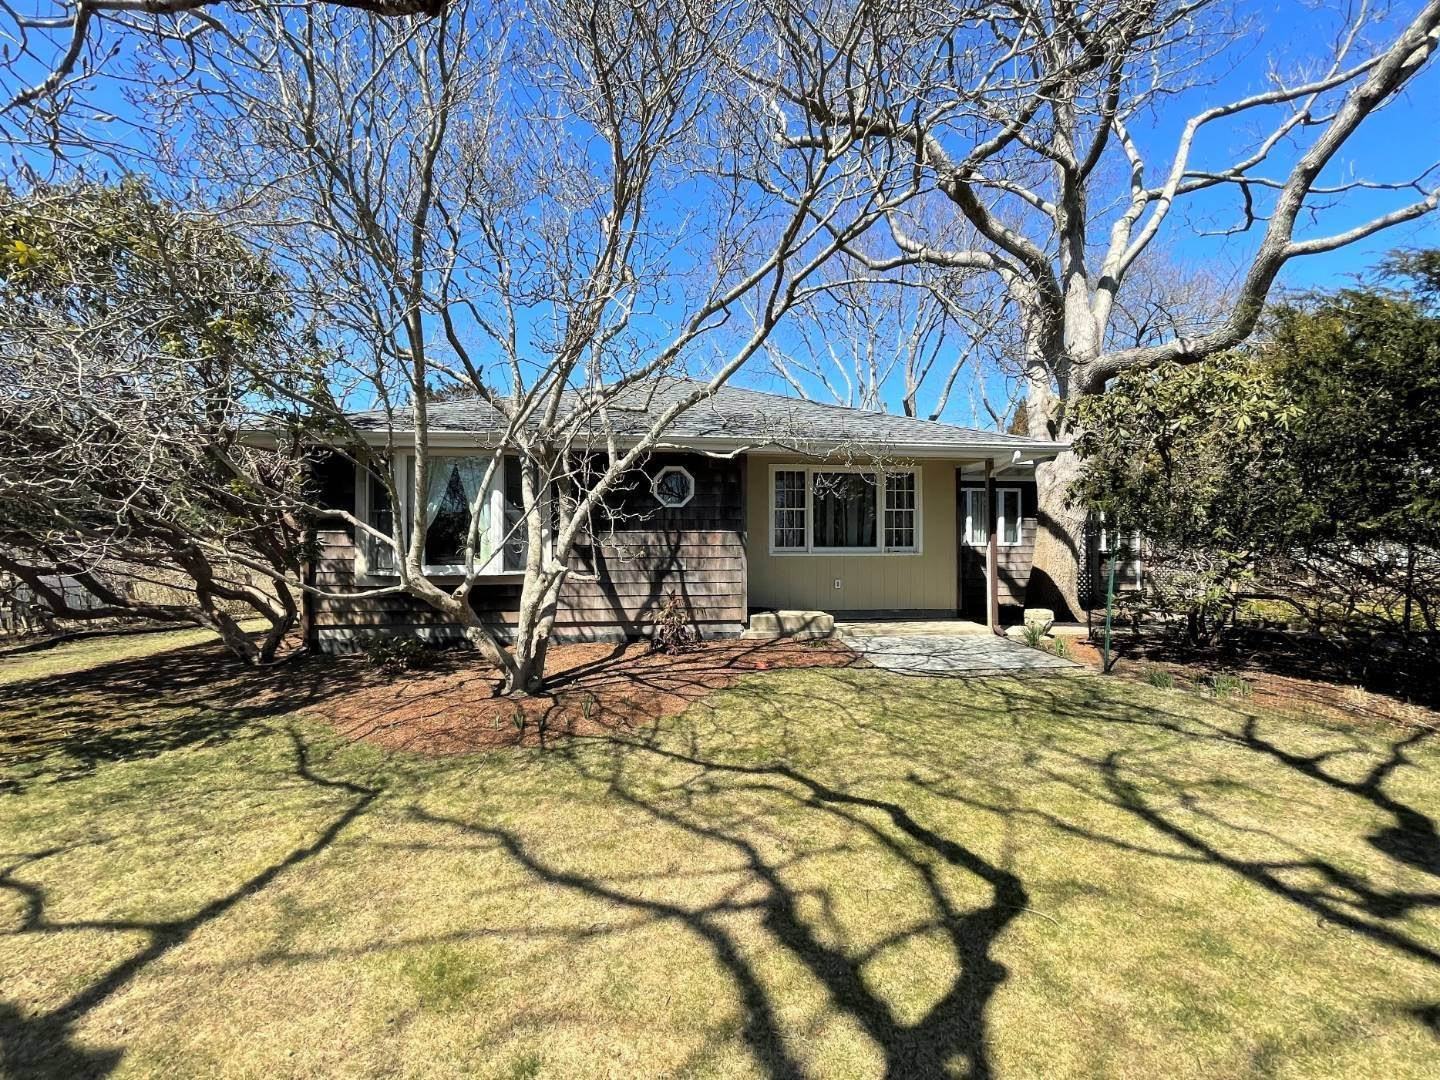 2. Single Family Home for Sale at Bluff Road, Amagansett 88 Bluff Road, Amagansett, NY 11930